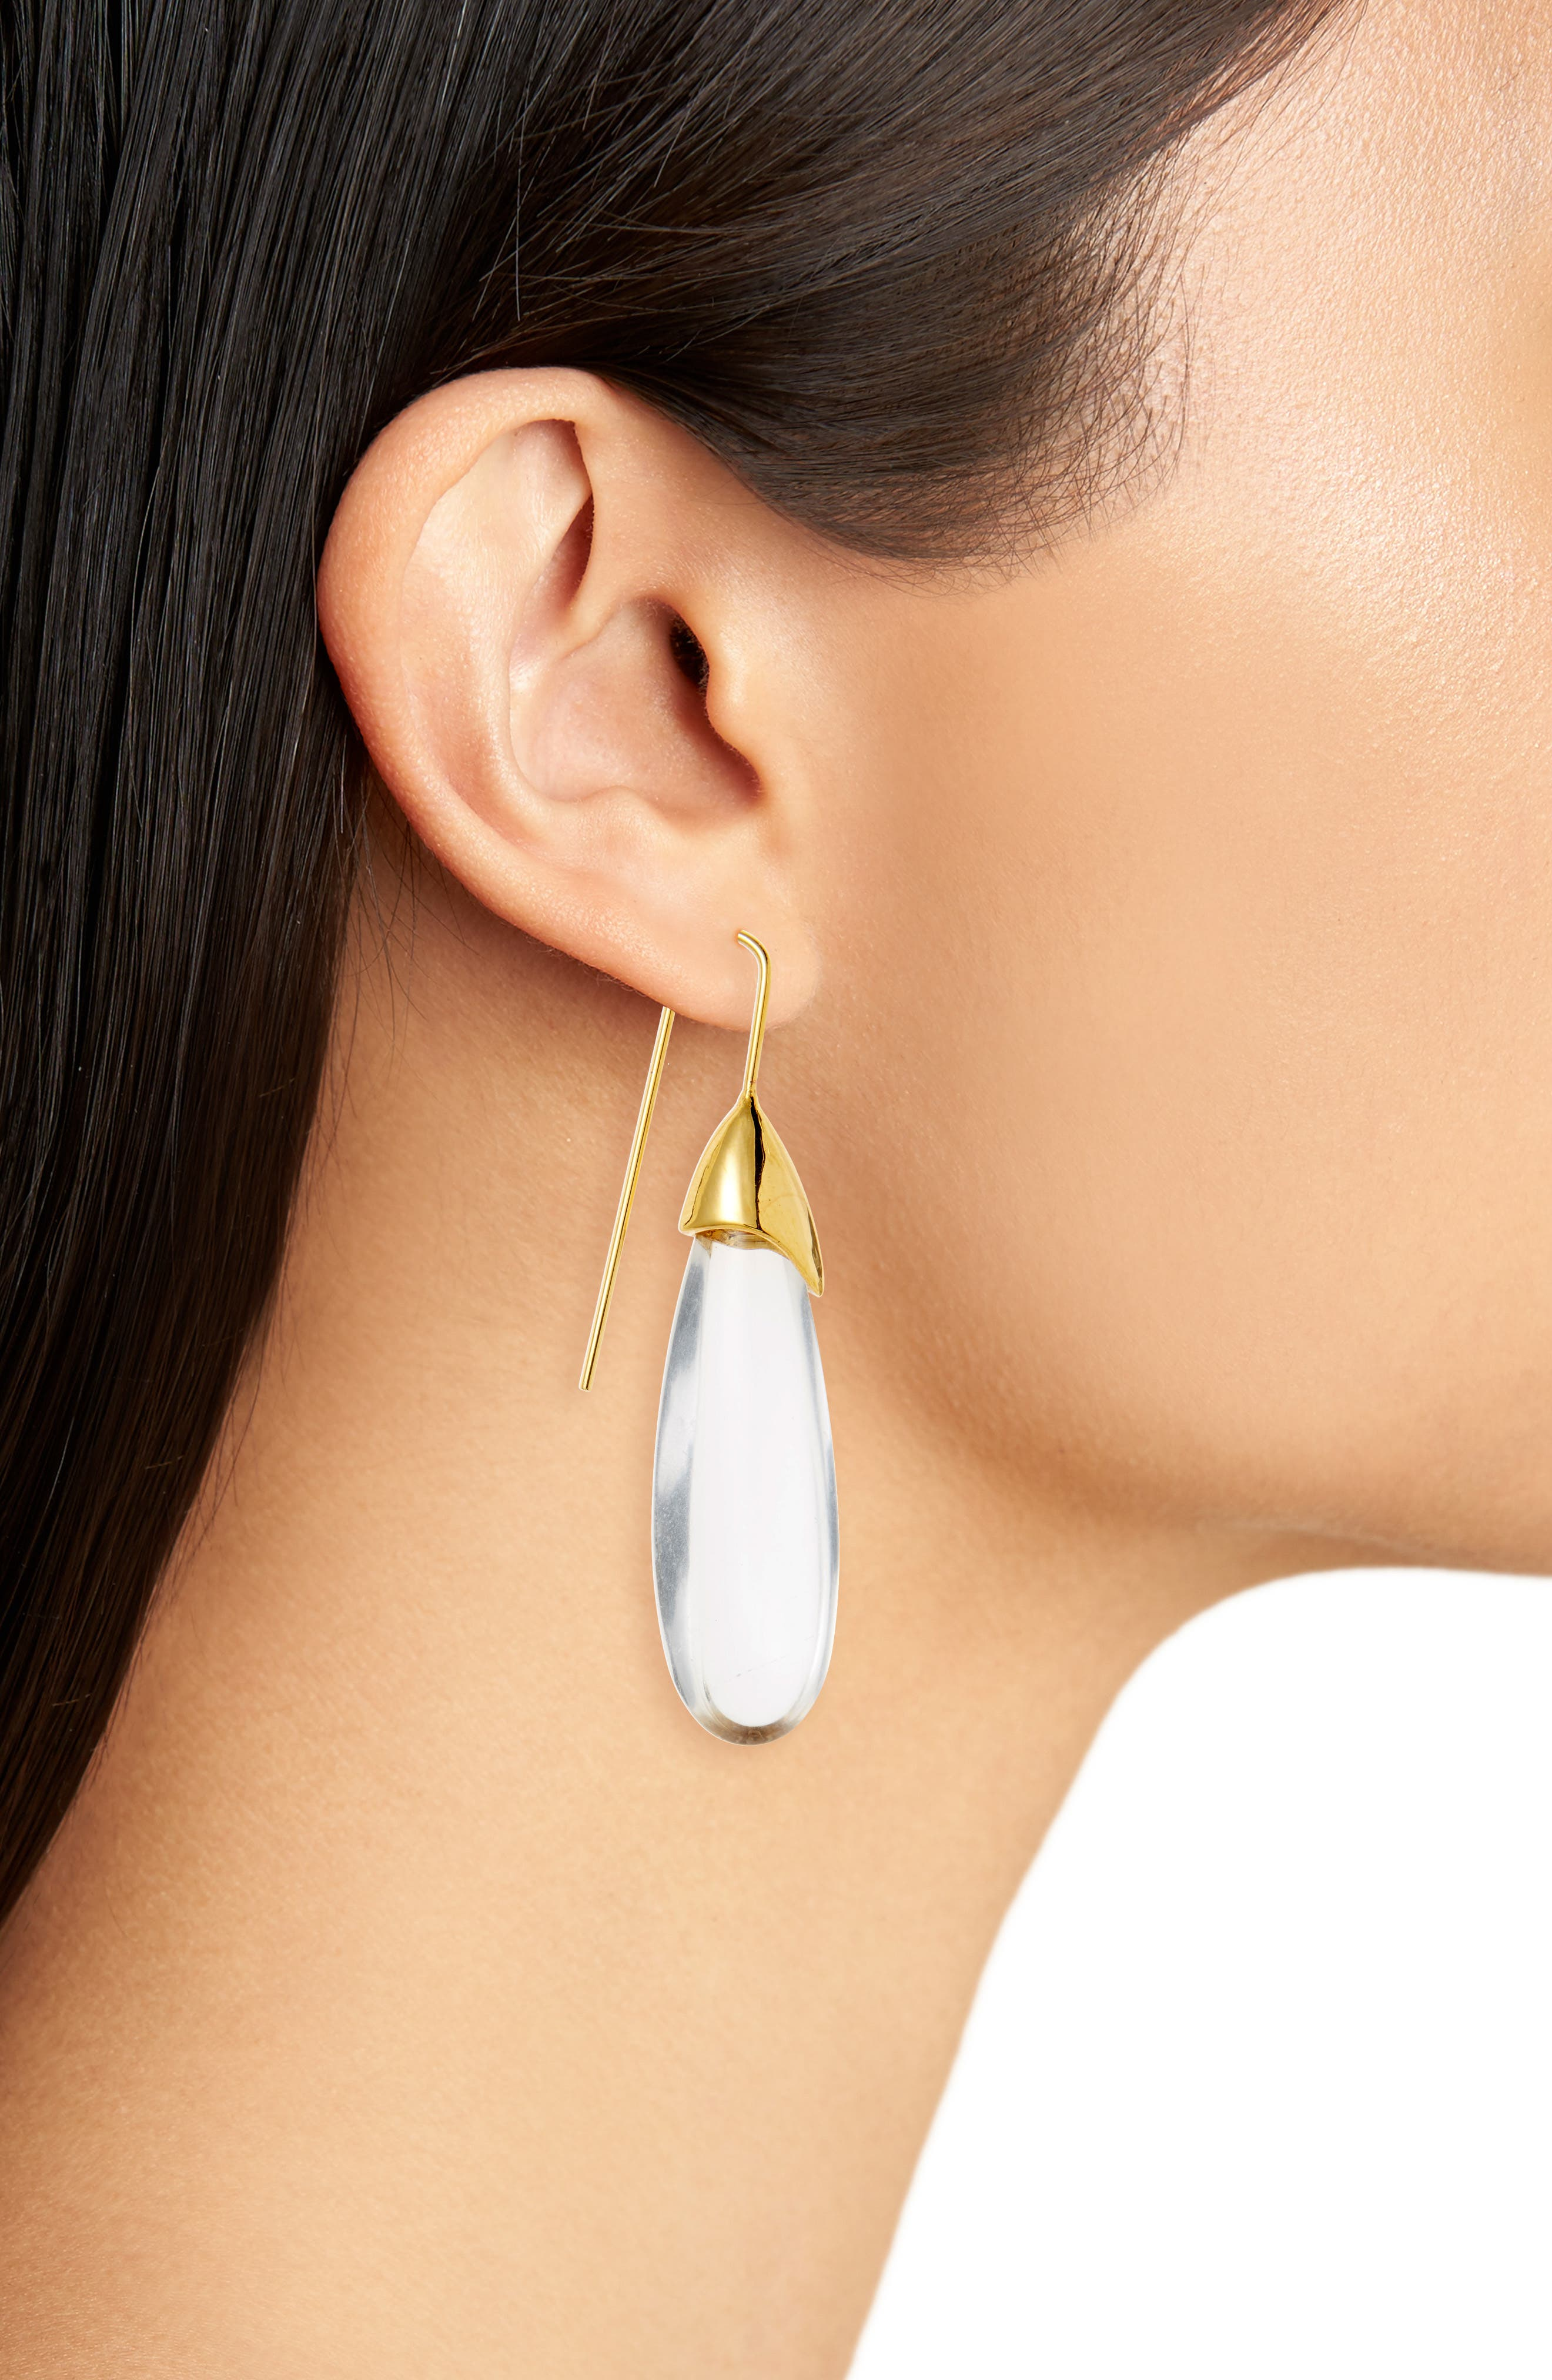 Rock of Ages Drop Earrings,                             Alternate thumbnail 2, color,                             710